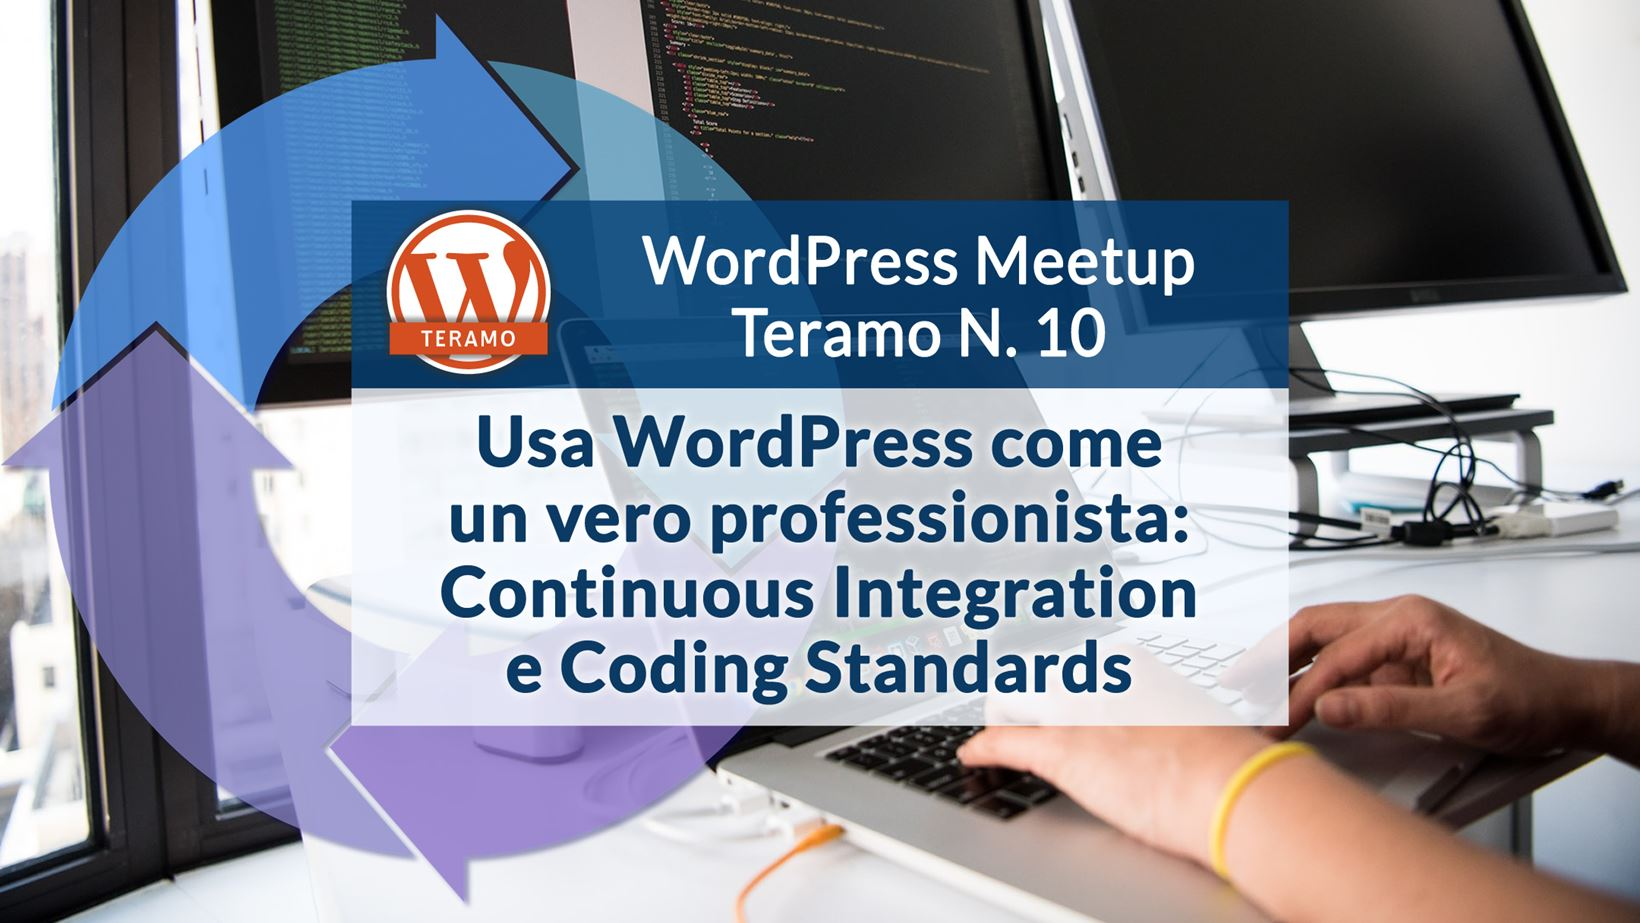 Continuous Integration e Coding Standards - WordPress Meetup Teramo N. 10